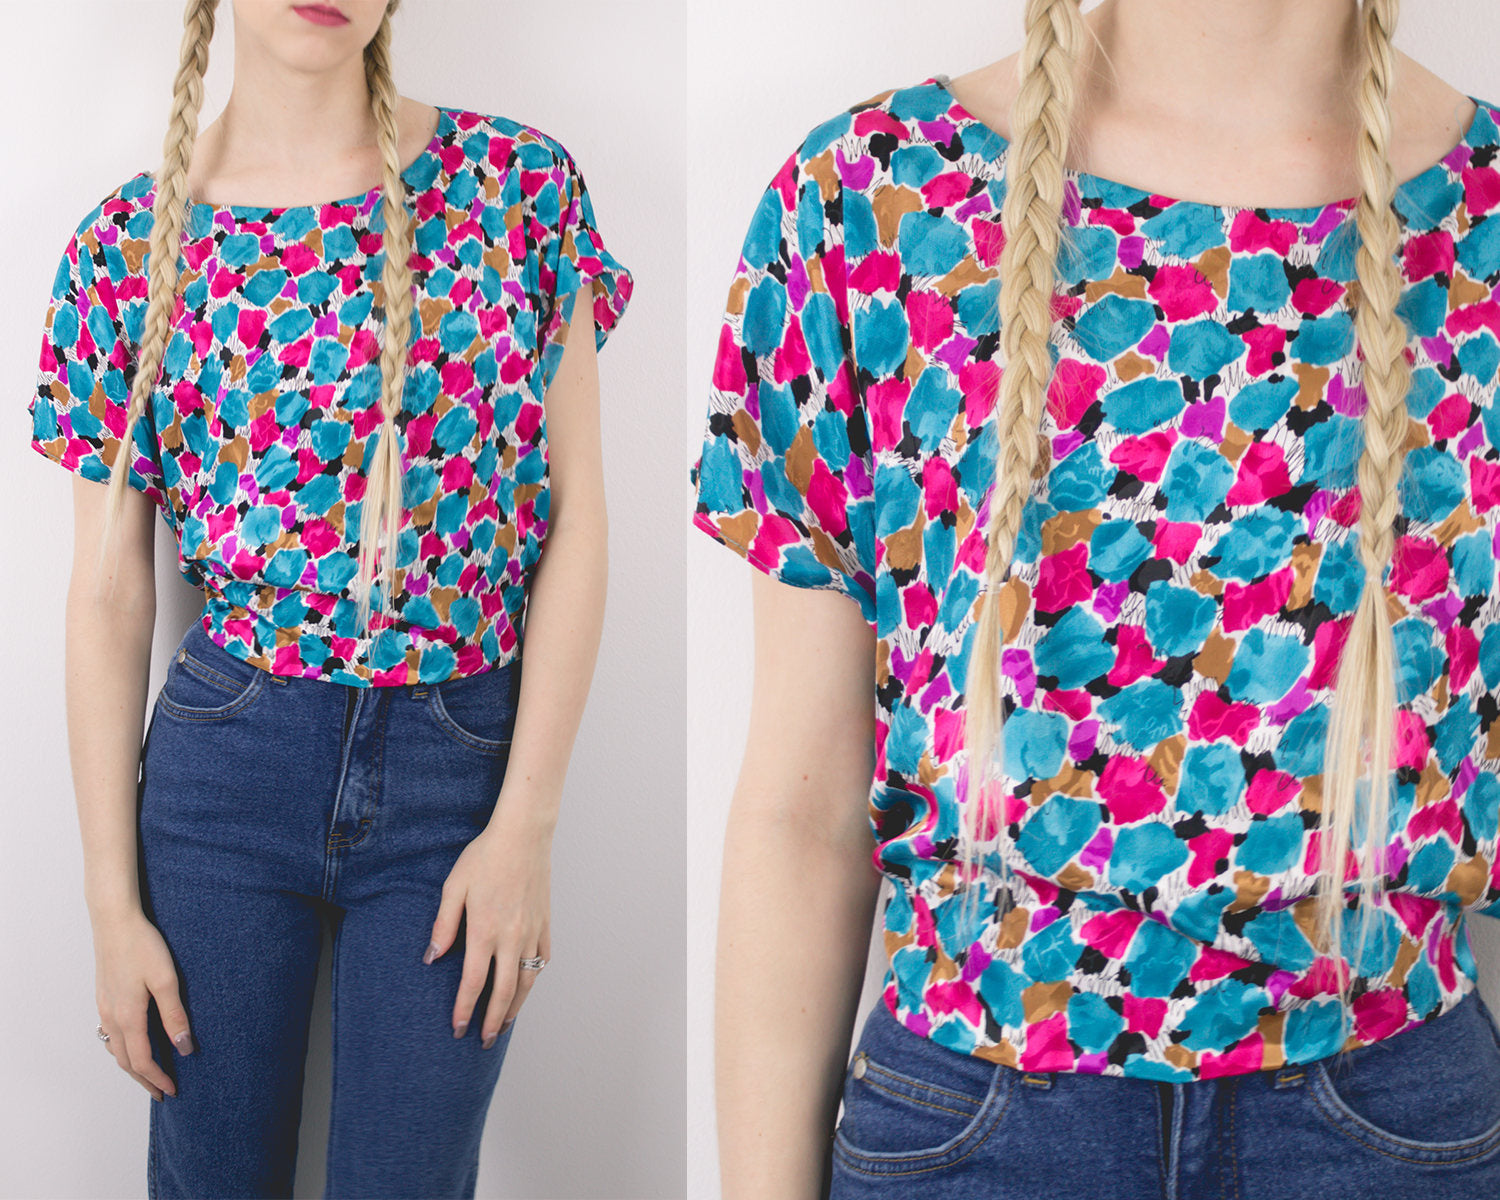 Vintage Colorful Floral Flowy Top